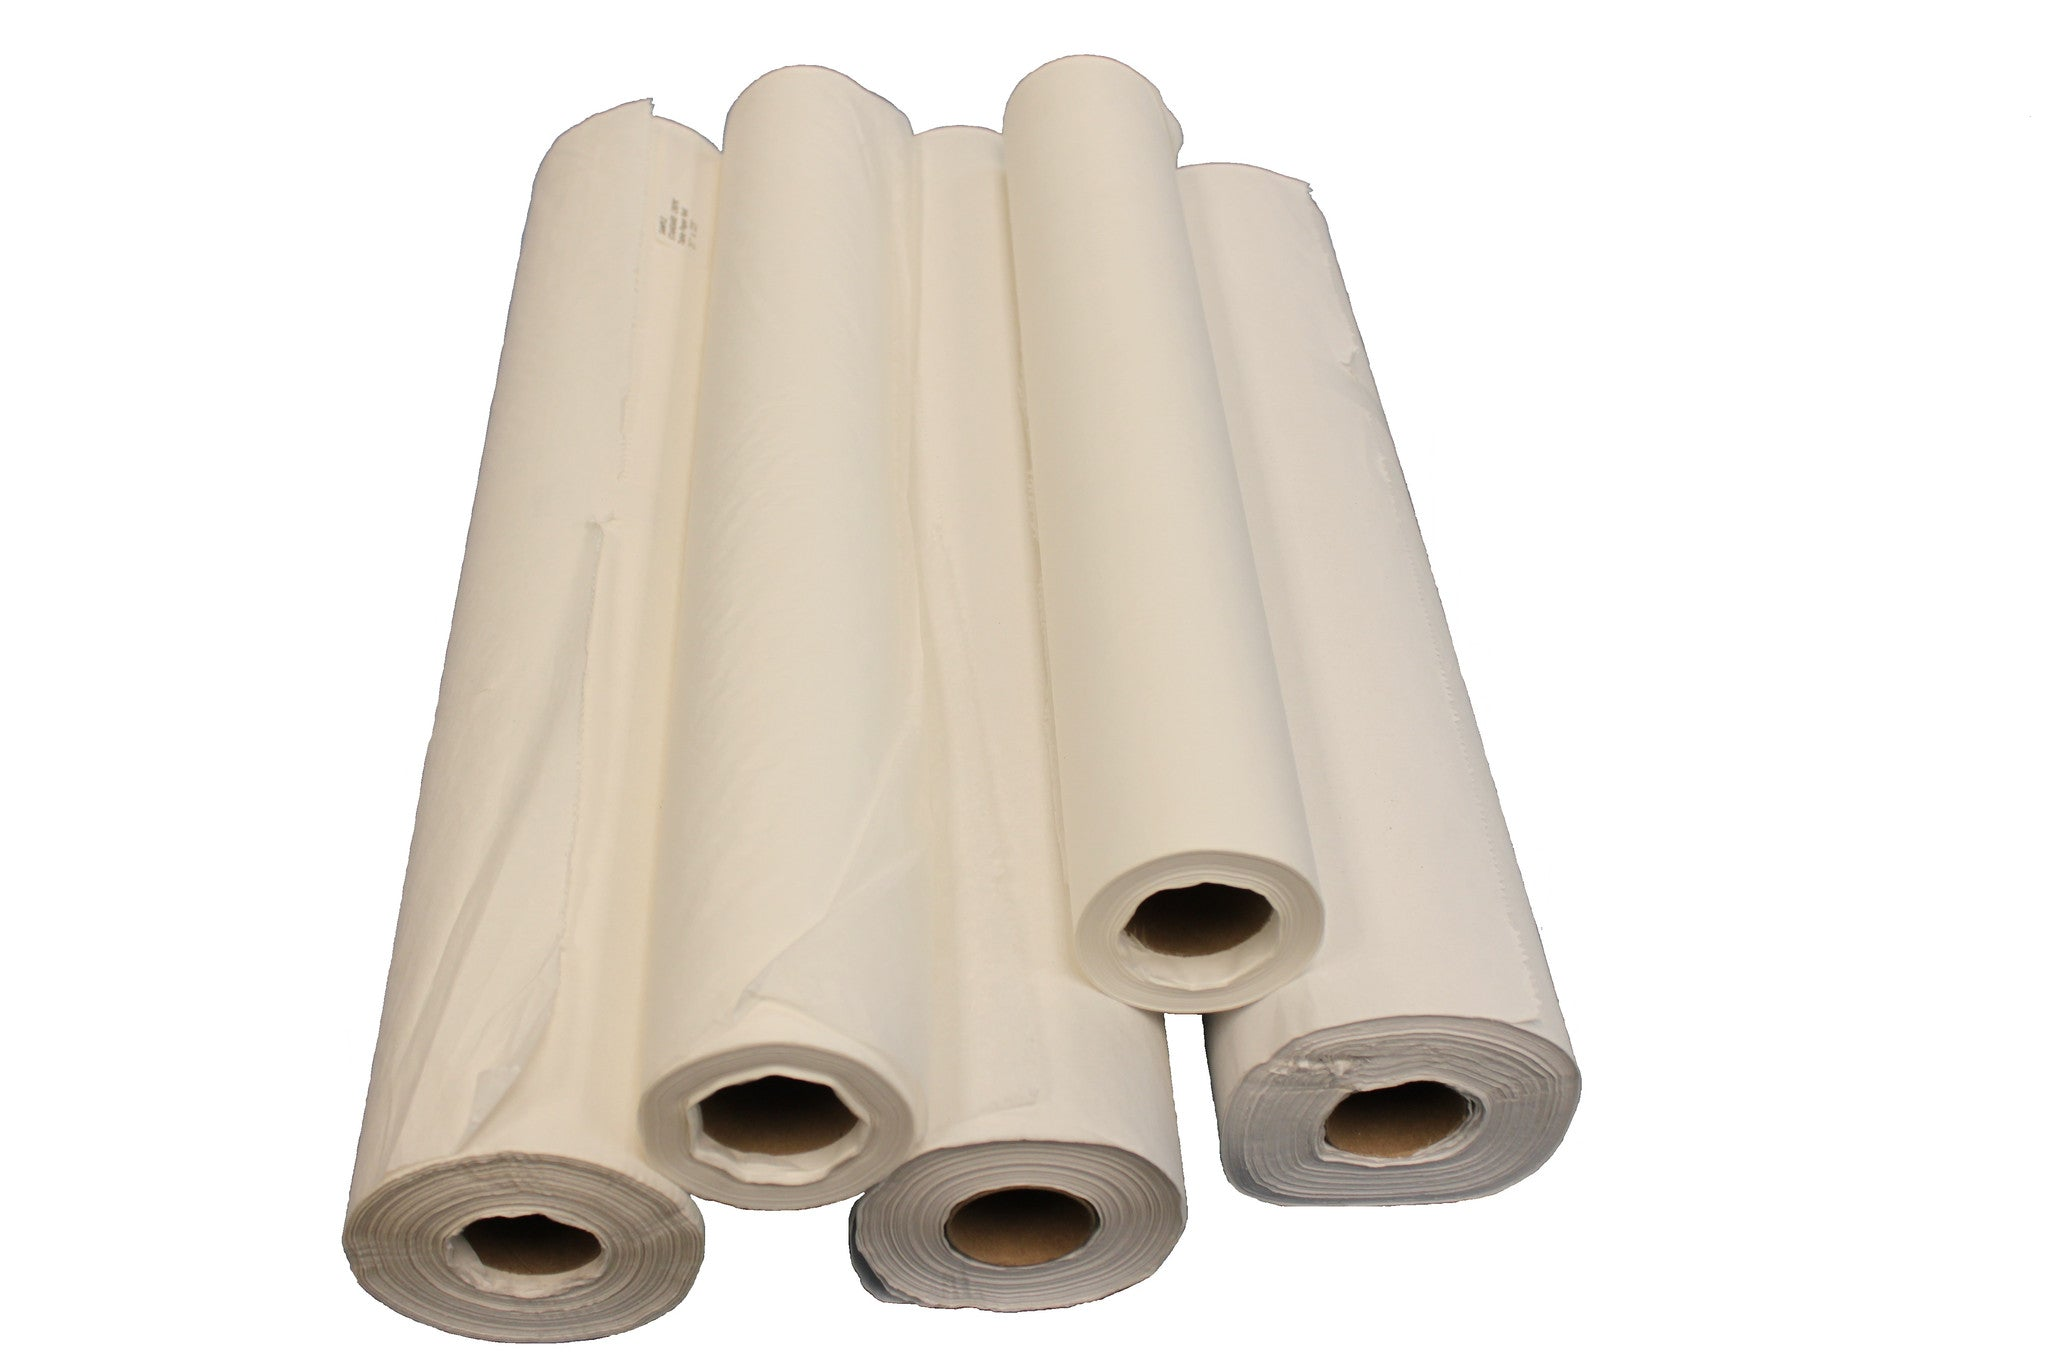 table paper Exam table paper offers a tissue/poly construction for maximum absorbency and strength crepe finish delivers a soft, quiet and absorbent covering for your exam tables.